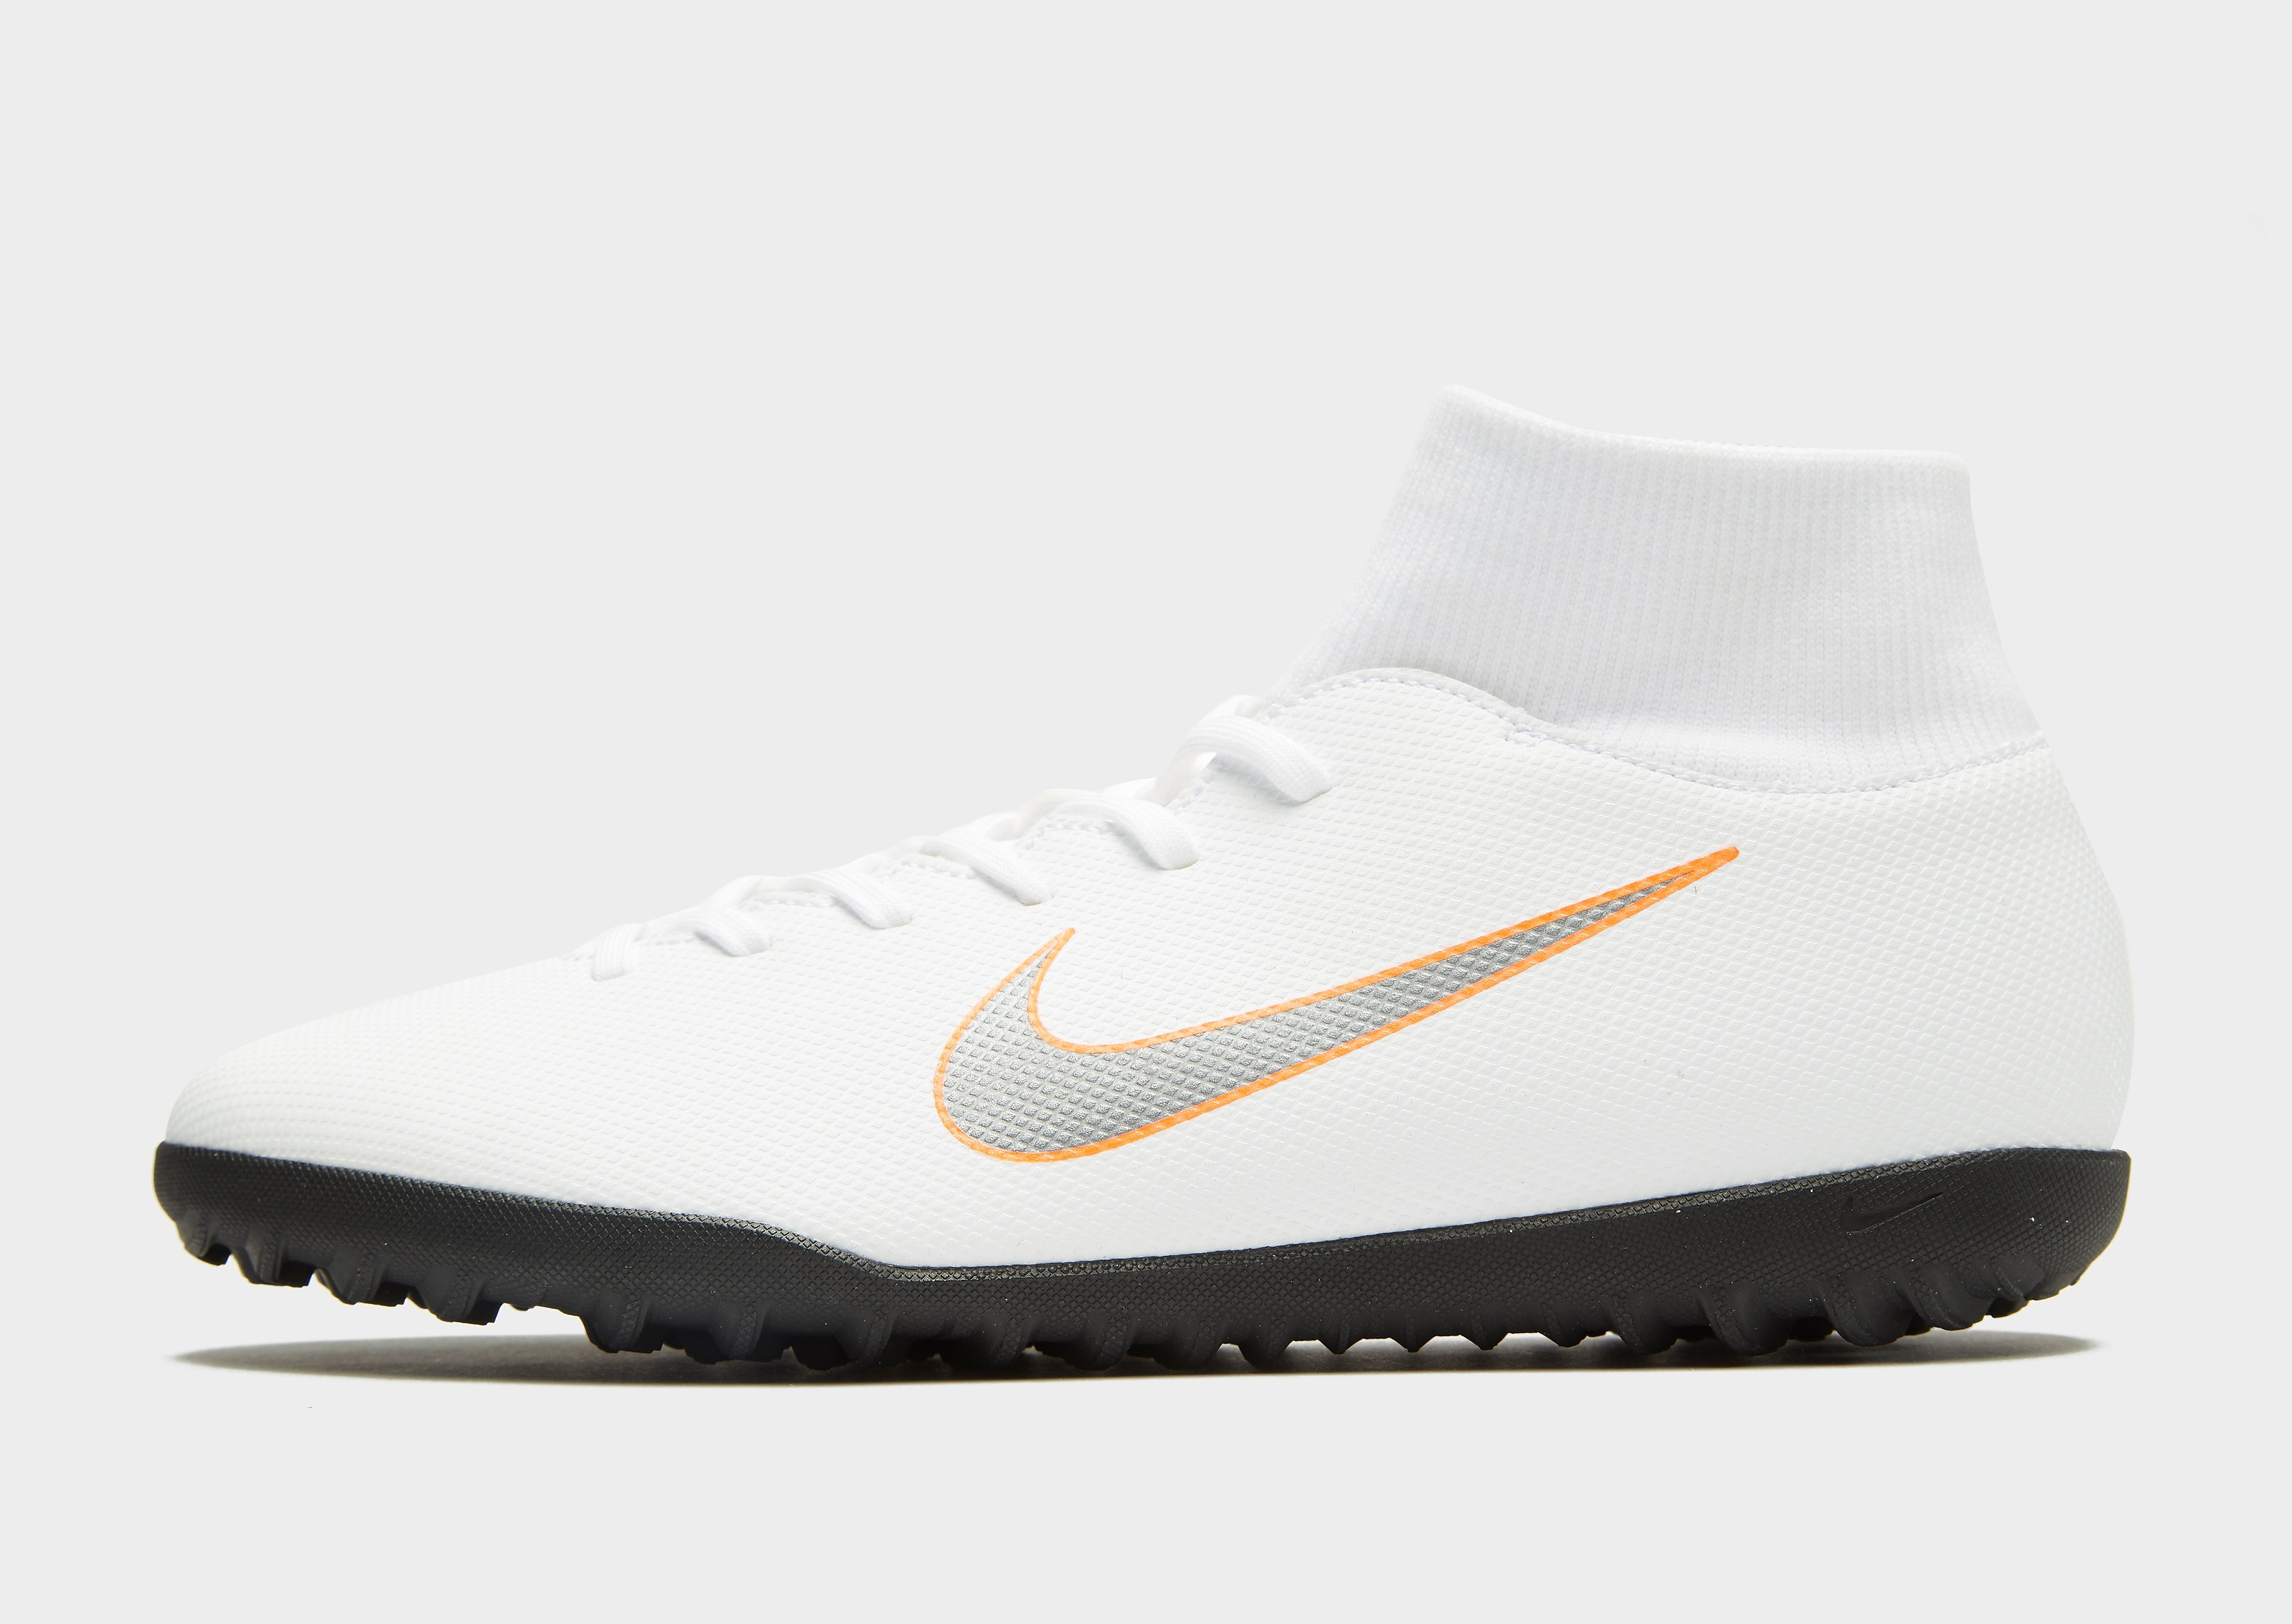 Nike ust Do It Mercurial Superfly Club Dynamic Fit TF